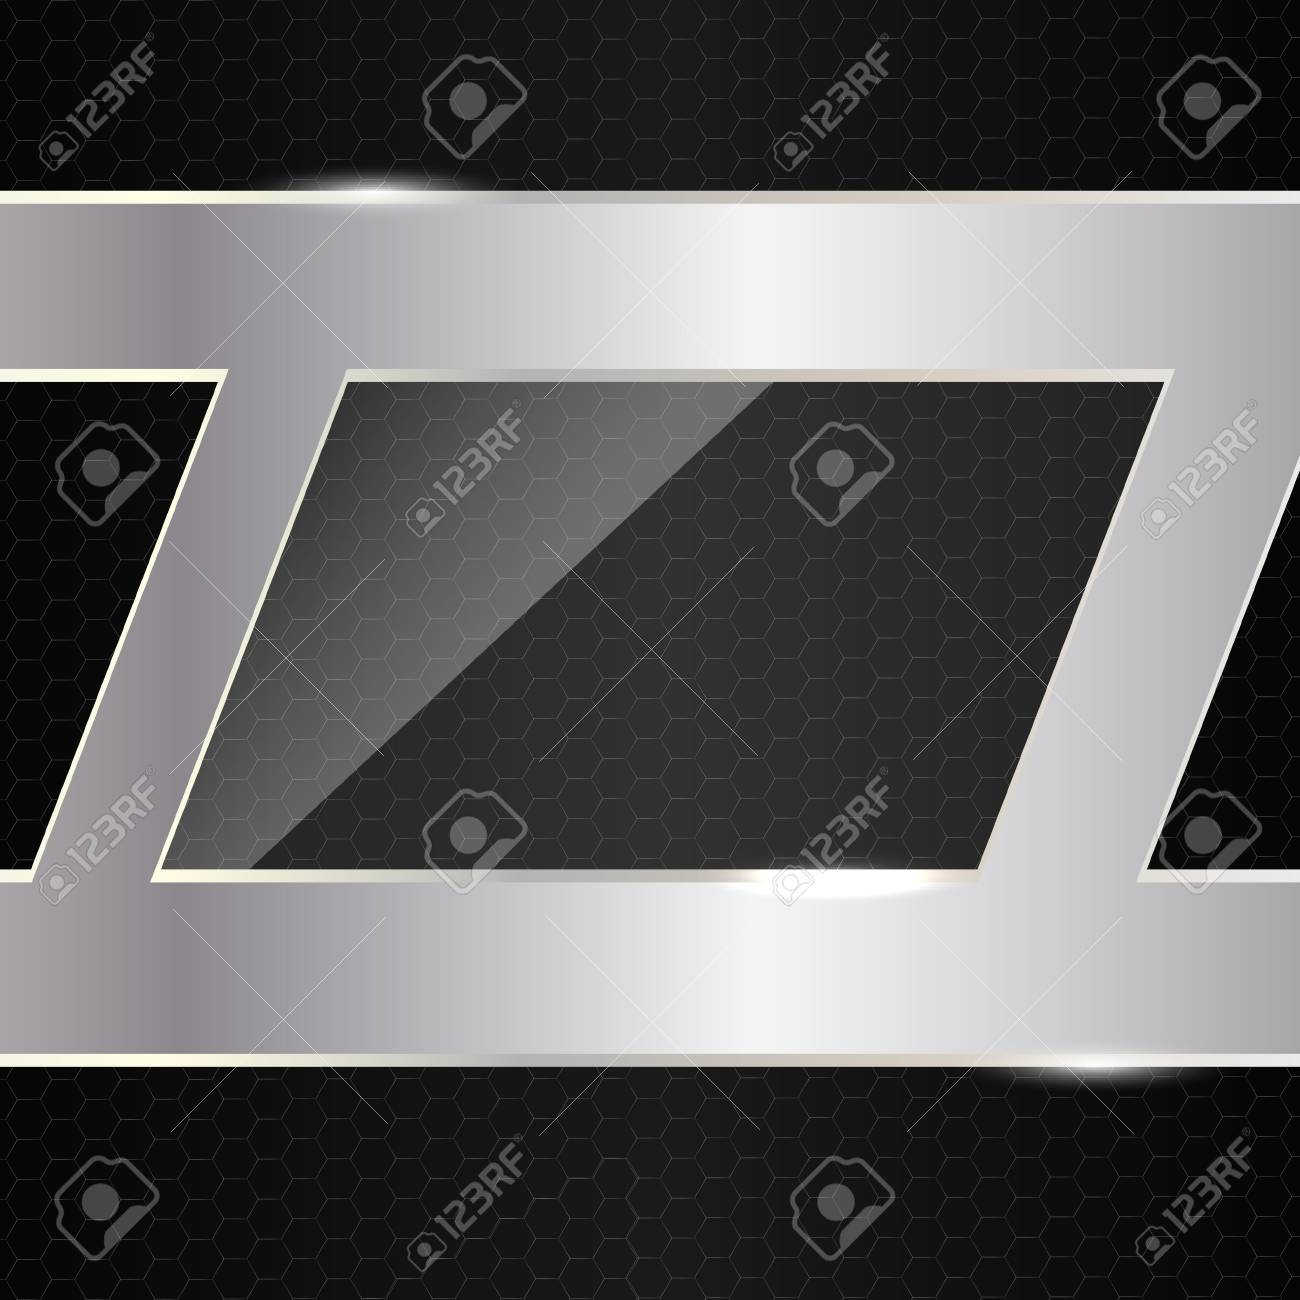 Abstract metal background  Vector illustration Stock Vector - 17068651